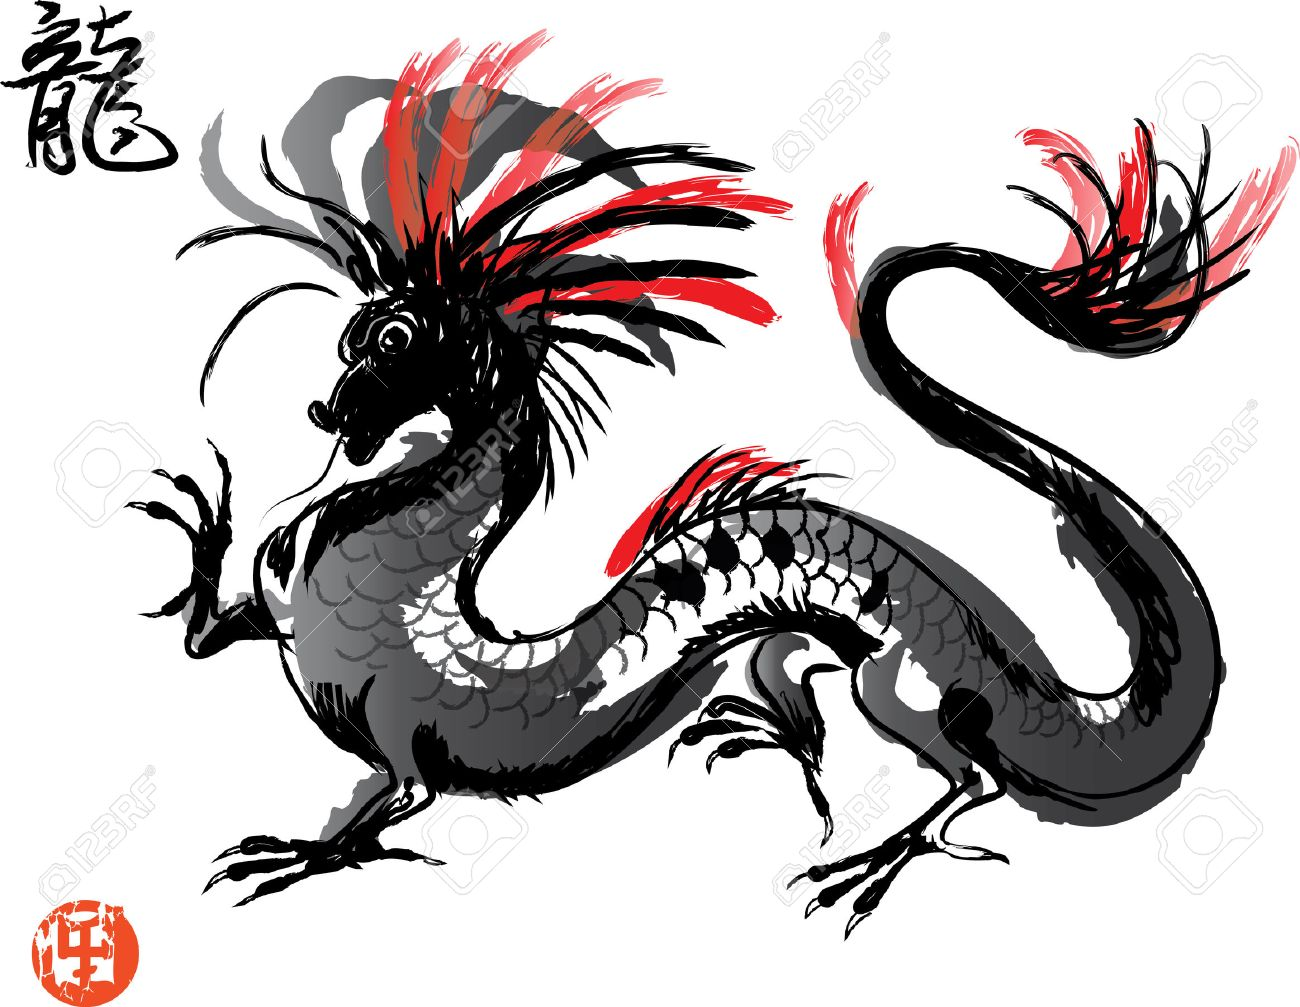 Artistic Japanese Dragon drawing in oriental style - 51289107